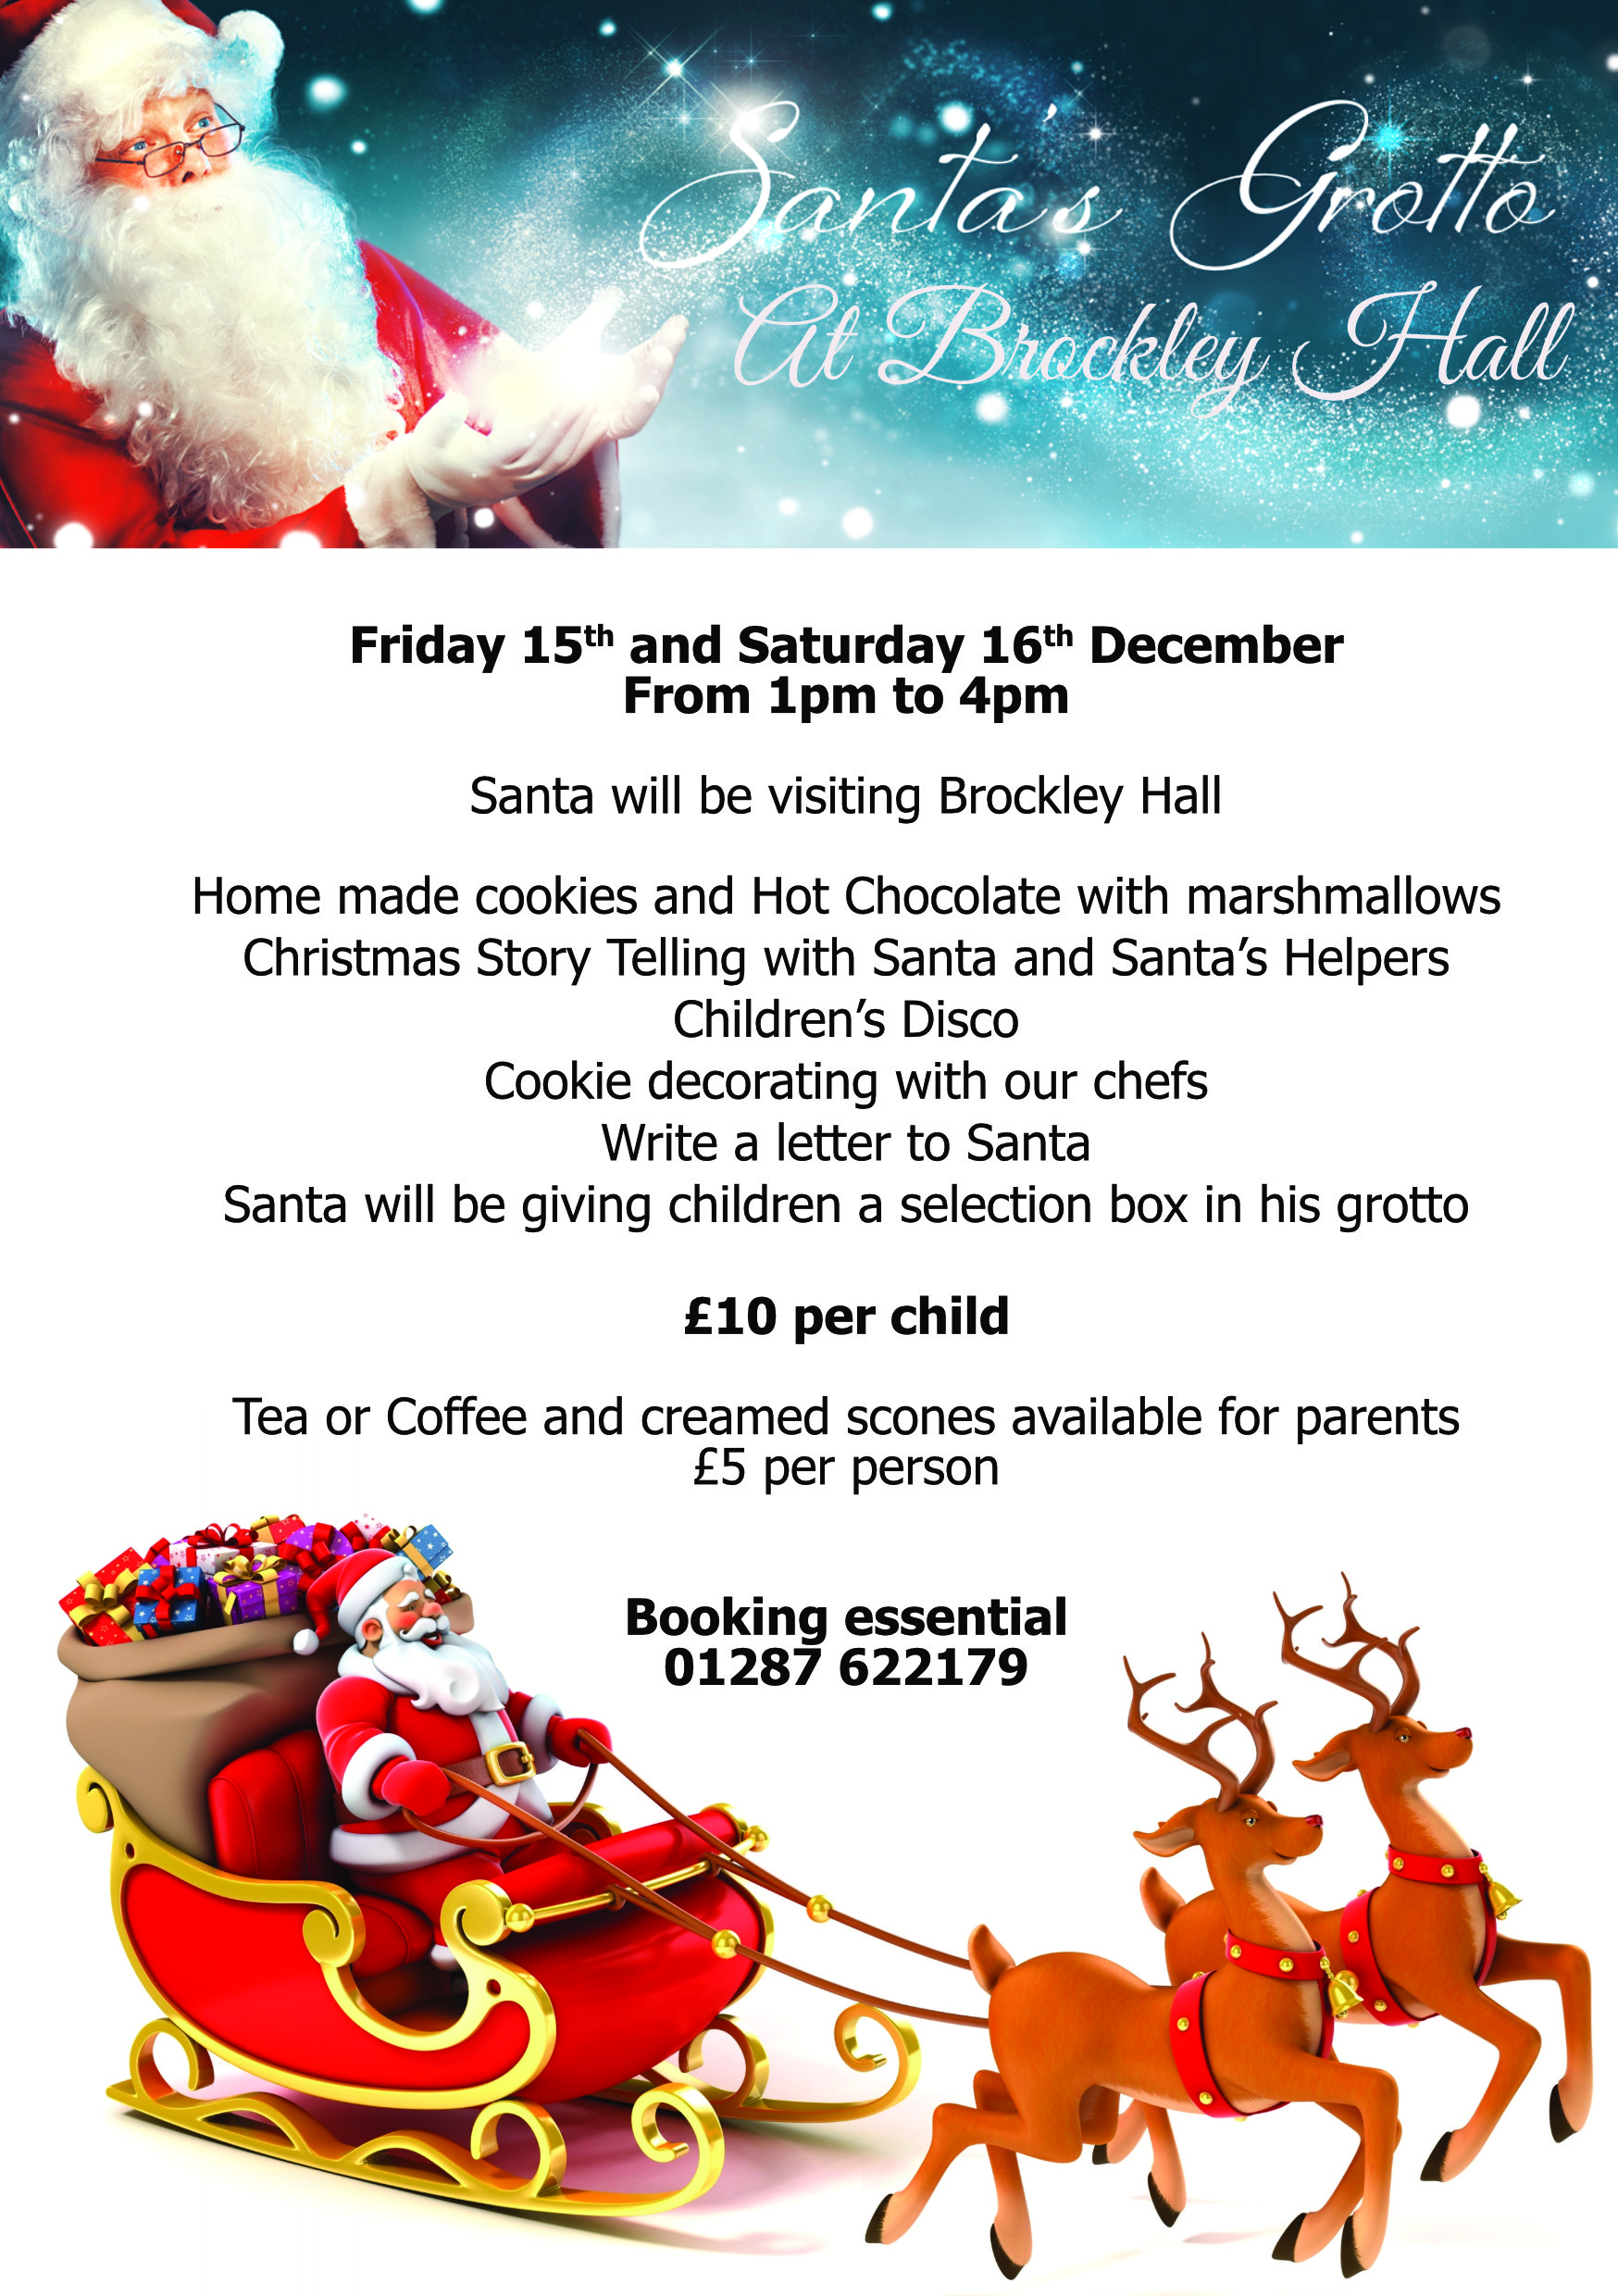 Brockley Hall Hotel  Santa Is Visiting Brockley Hall